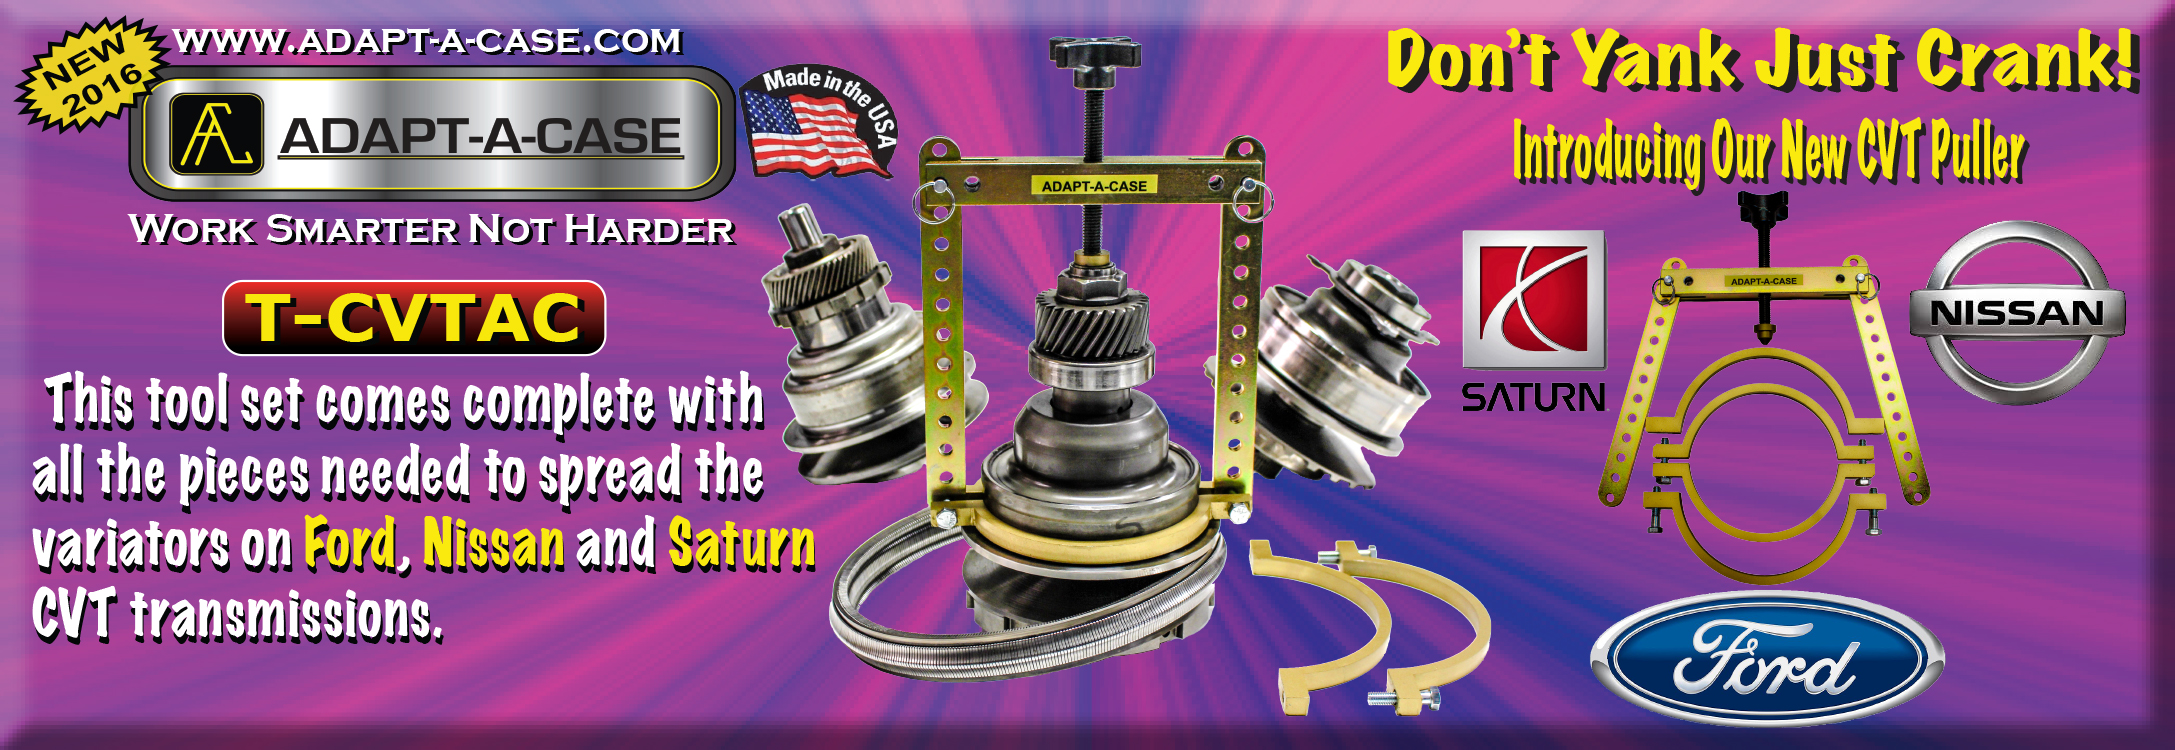 CVT Puller for Ford, Nissan, and Saturn